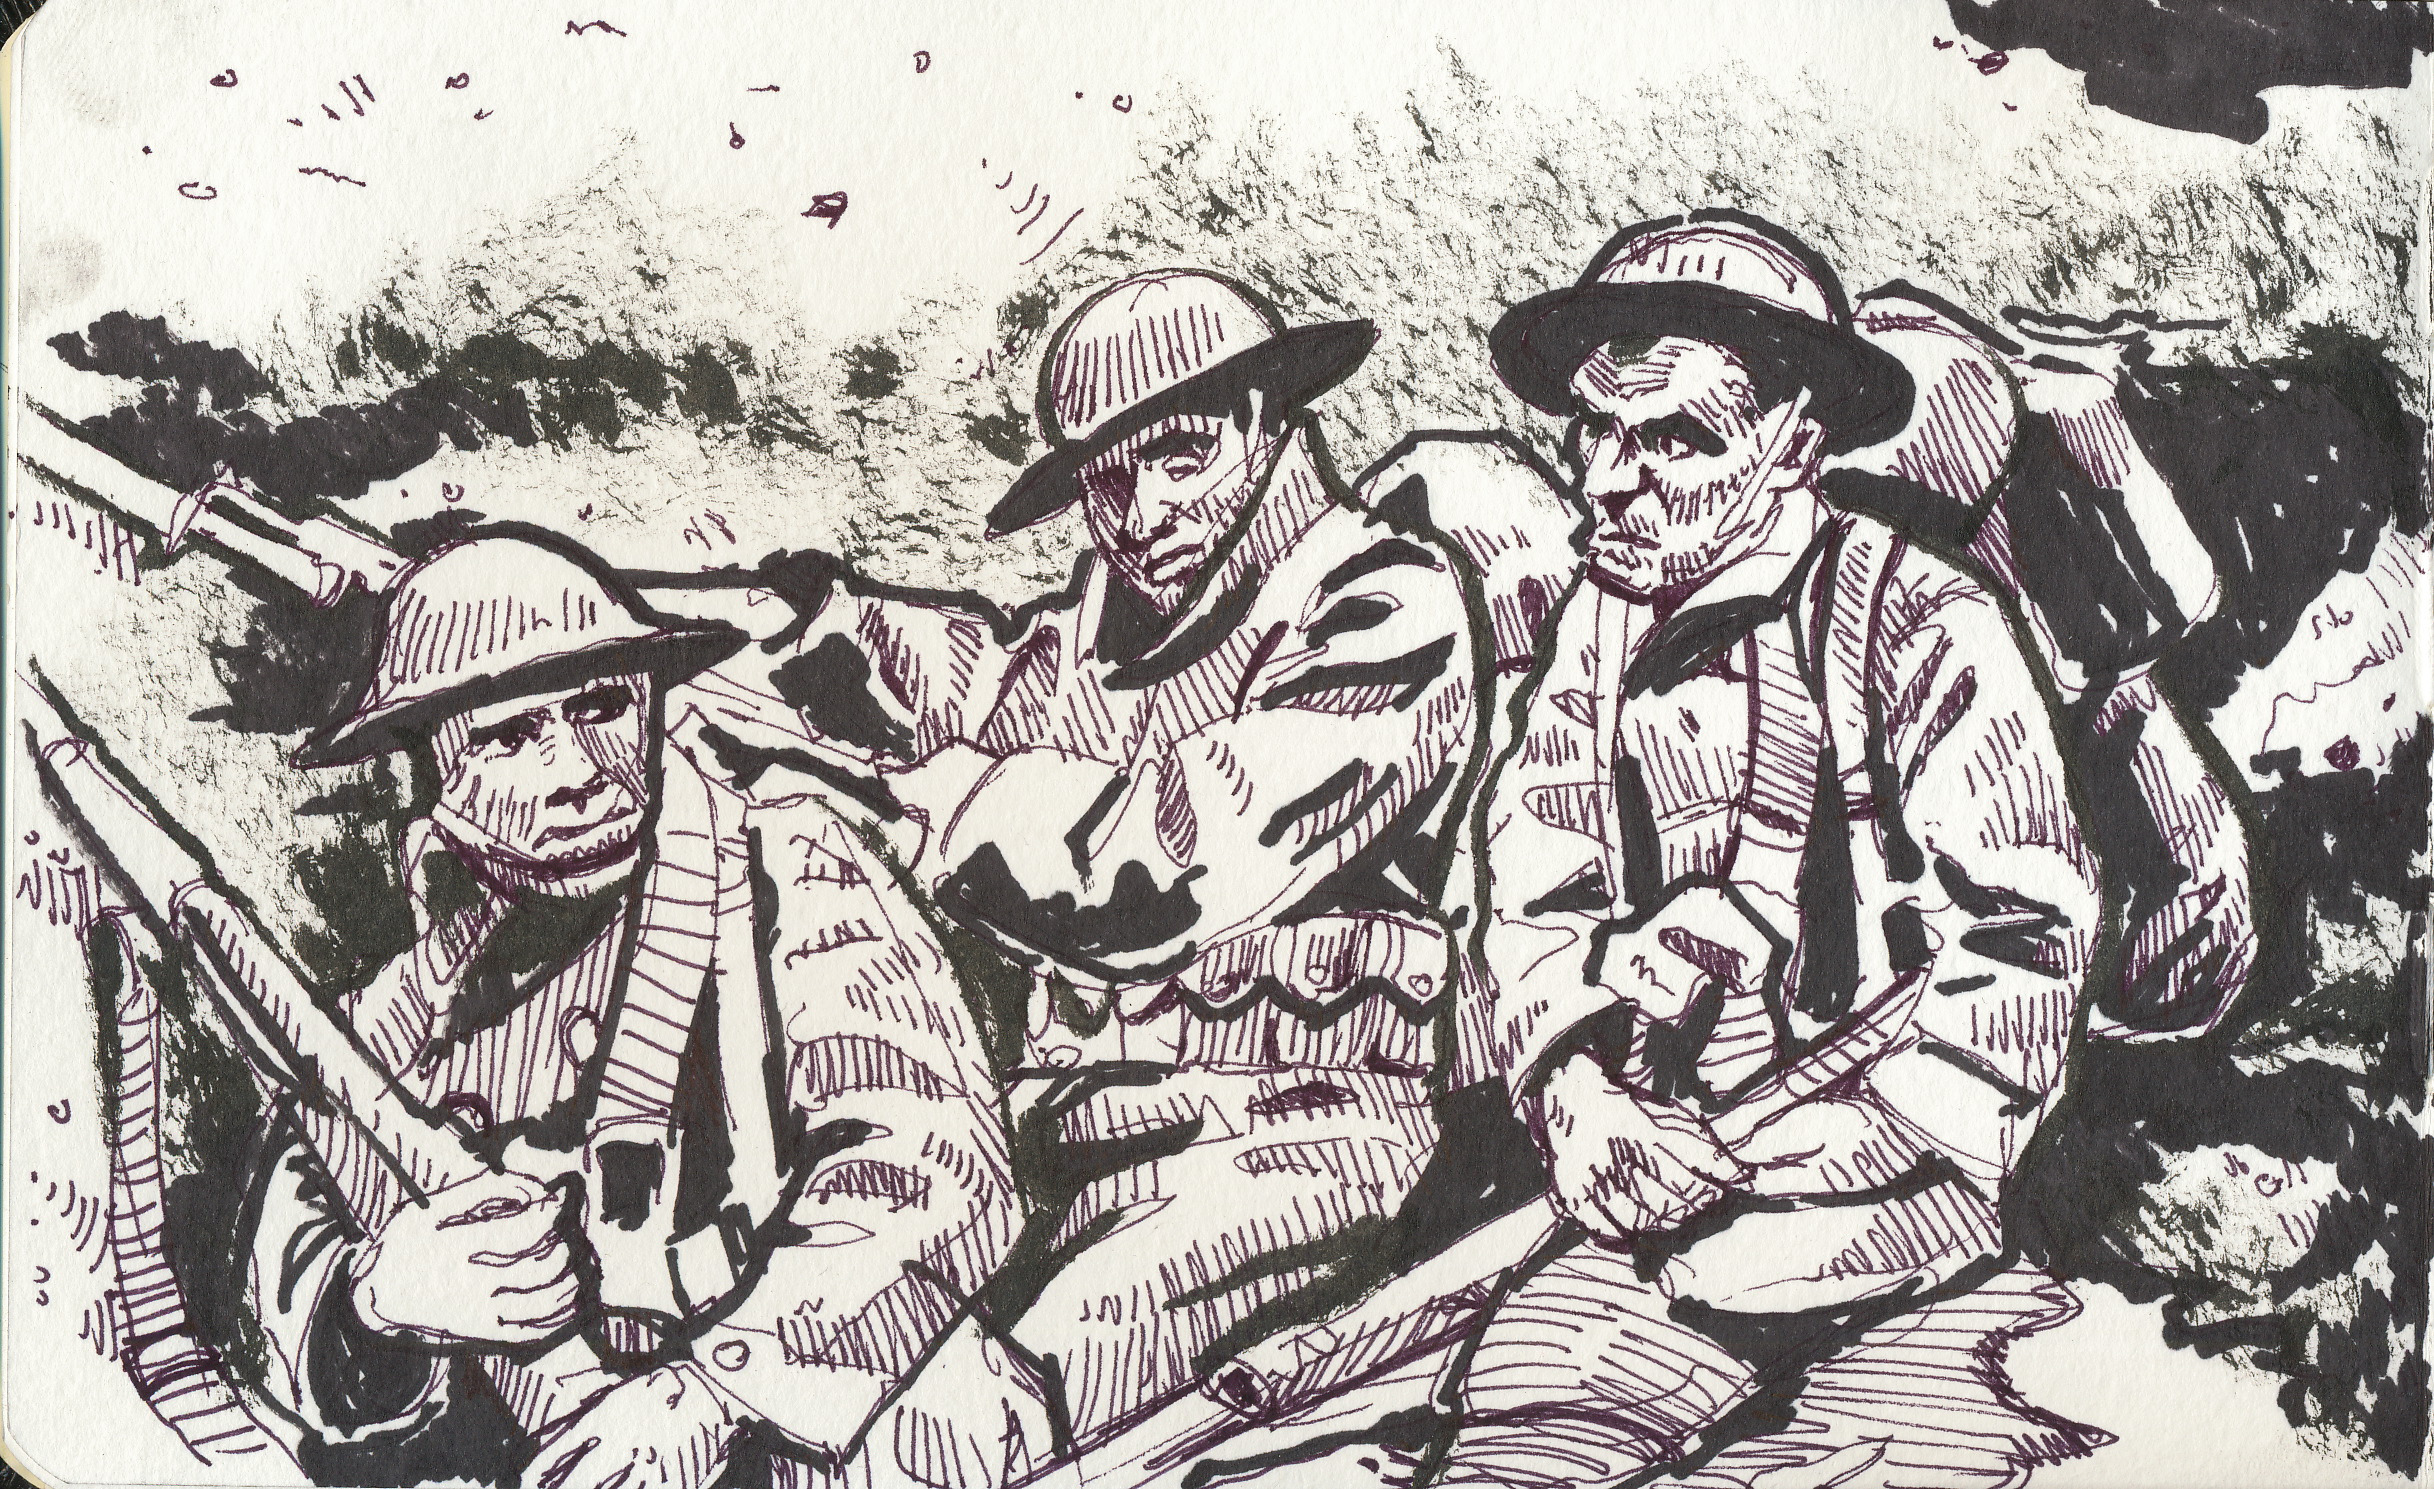 American troops in the trenches of World War 1